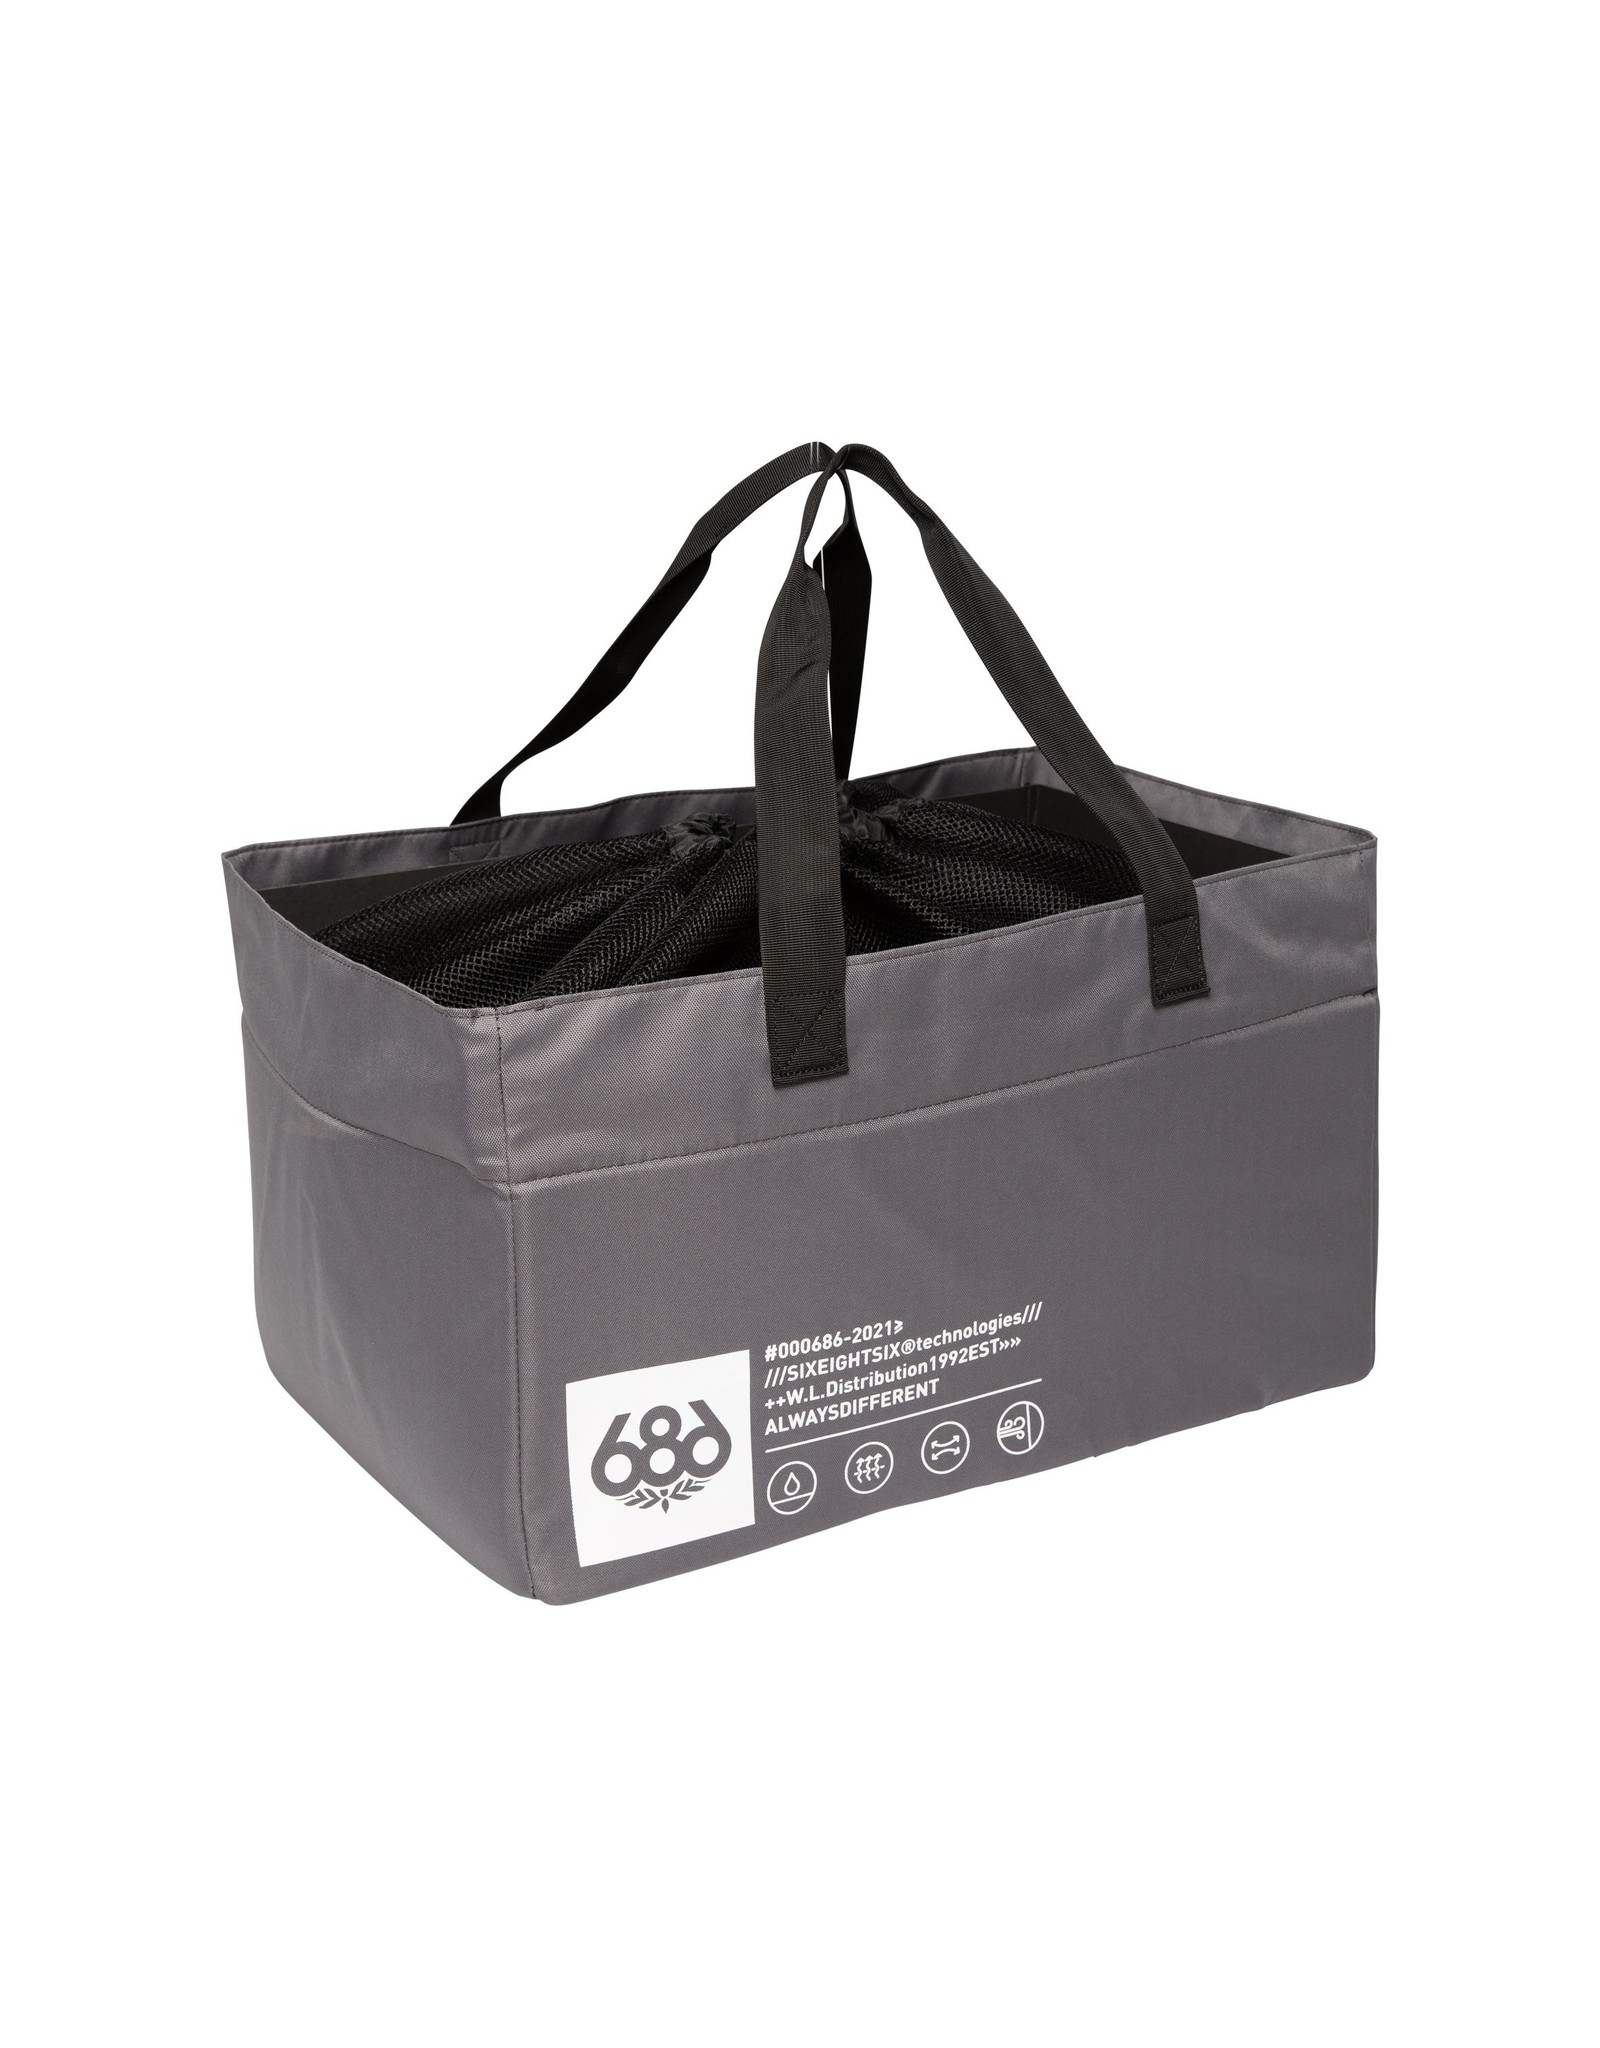 686 686 - STORAGE GEAR BAG - CHaRCOAL